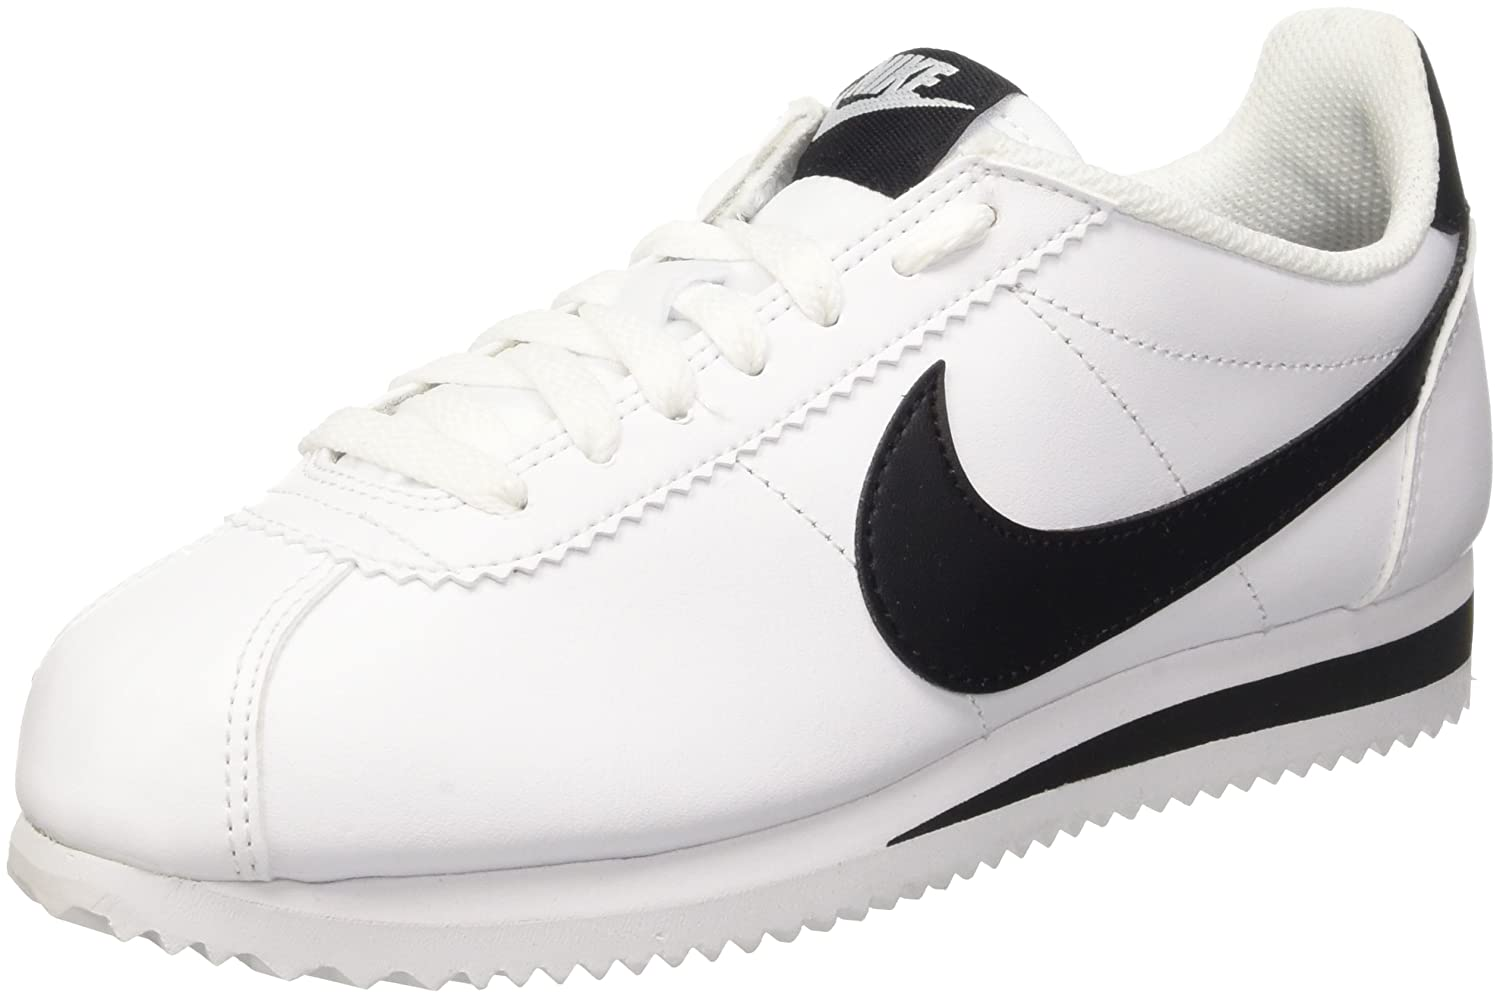 cortez nike shoes for babies